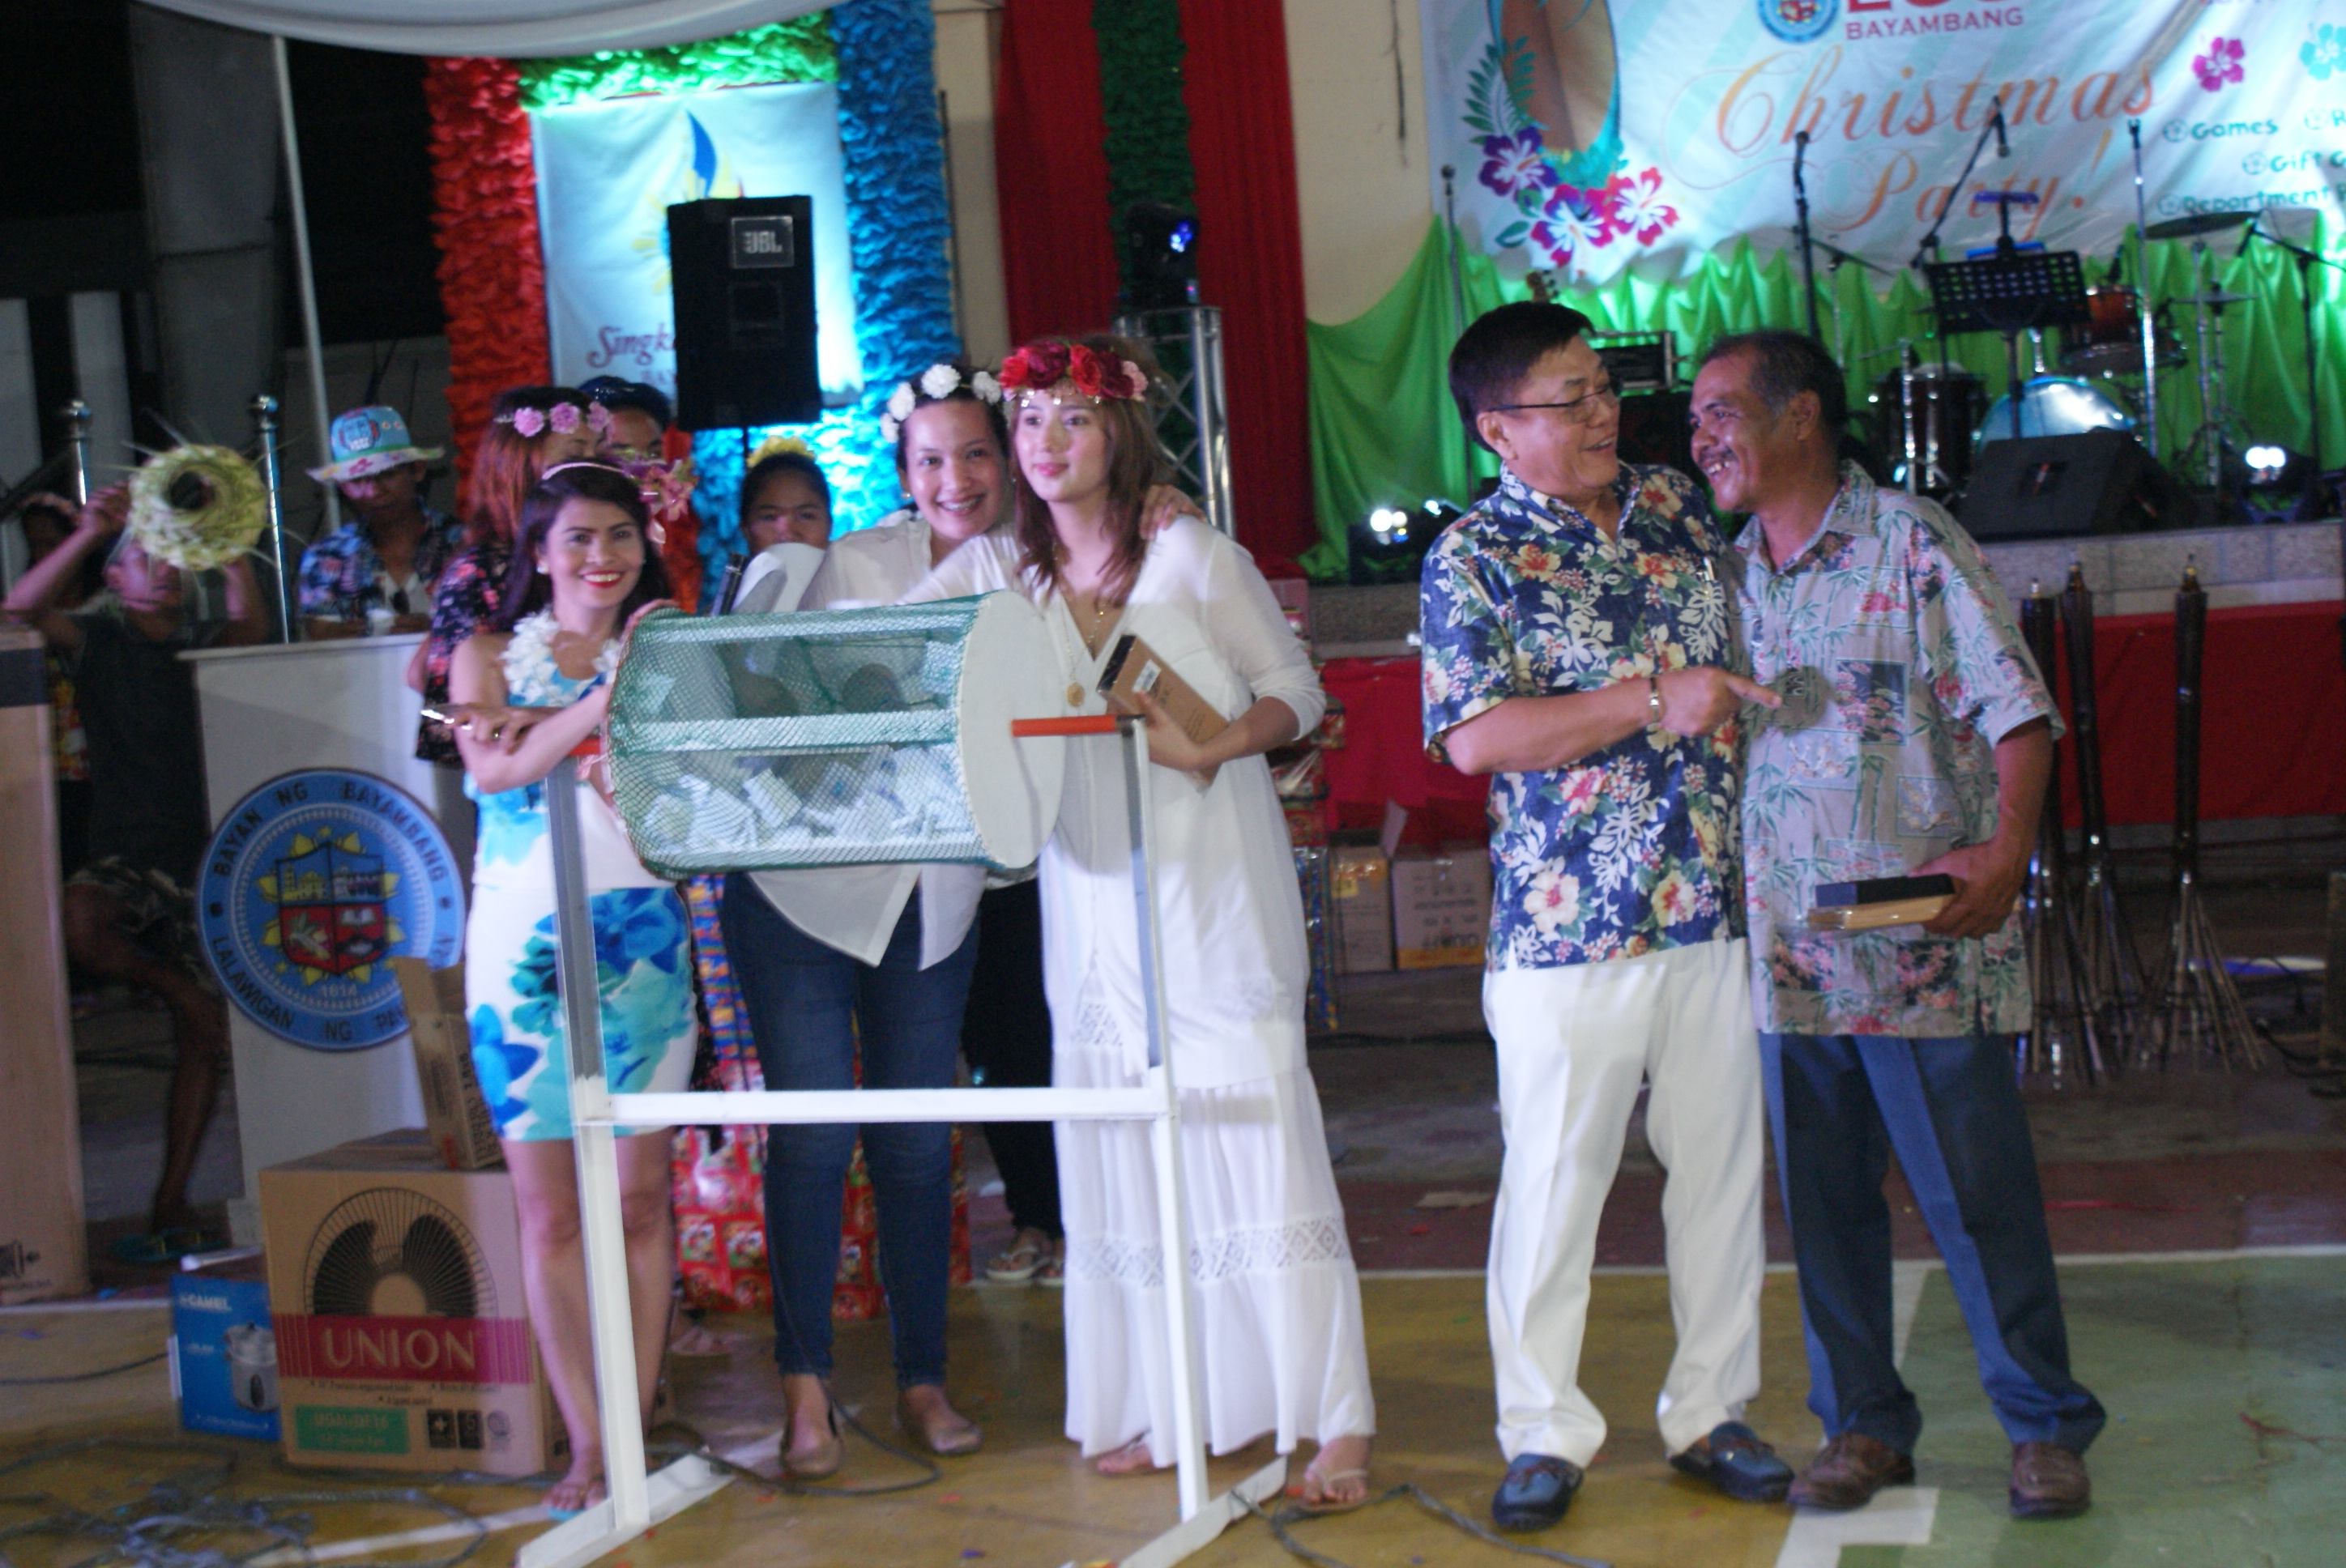 LGU Goes Hawaiian in its 2016 Christmas Party